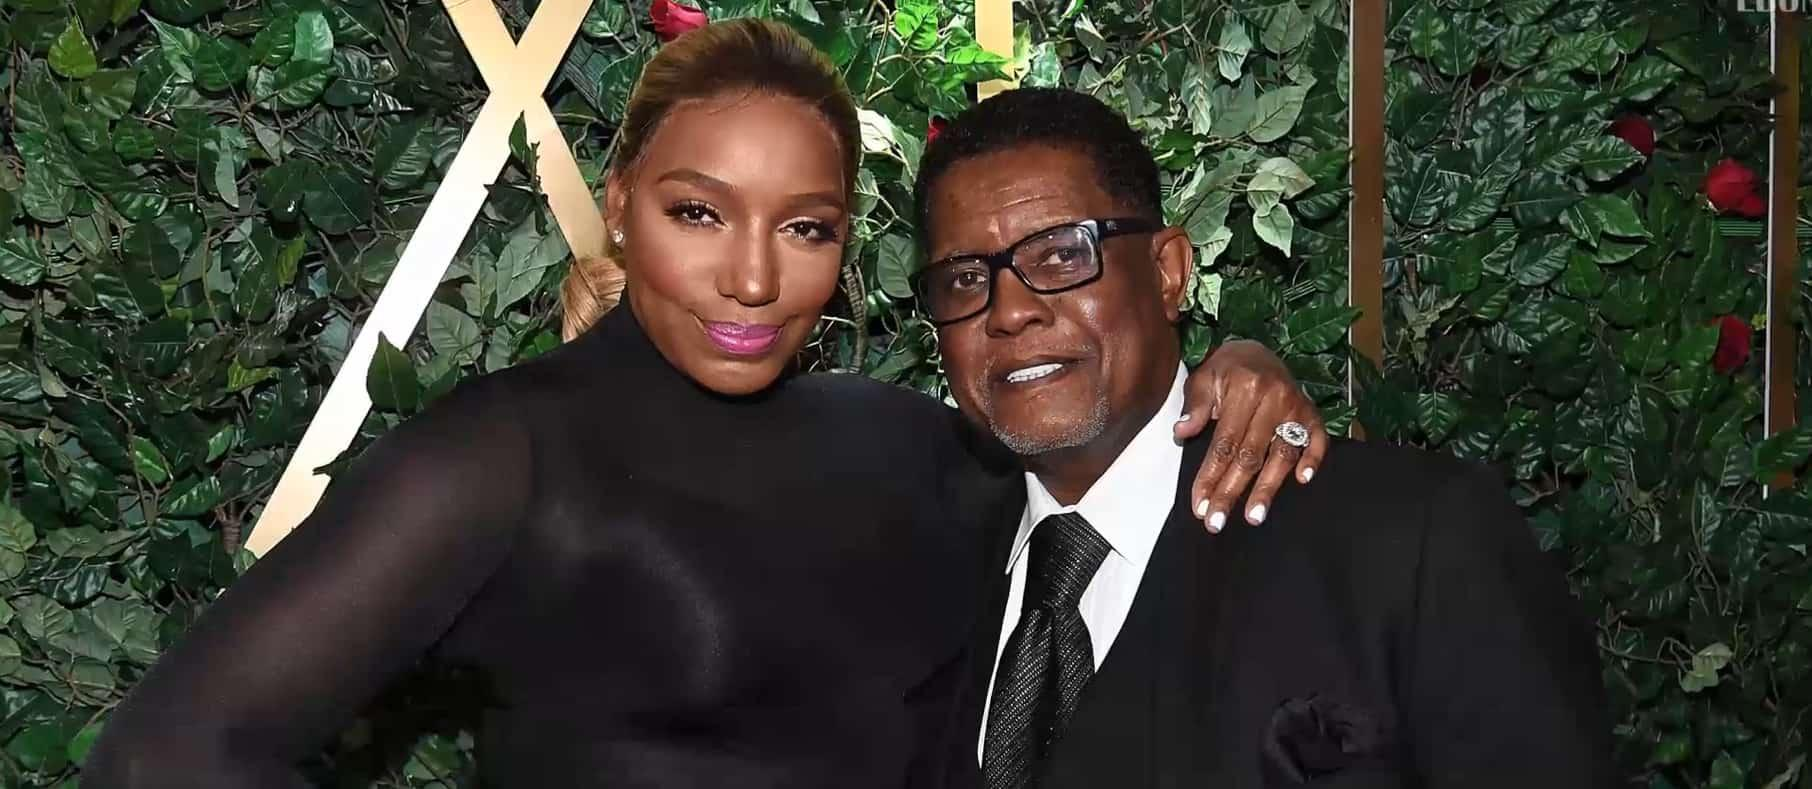 Nene Leakes Has Tough Conversation With Gregg In 'RHOA' Preview